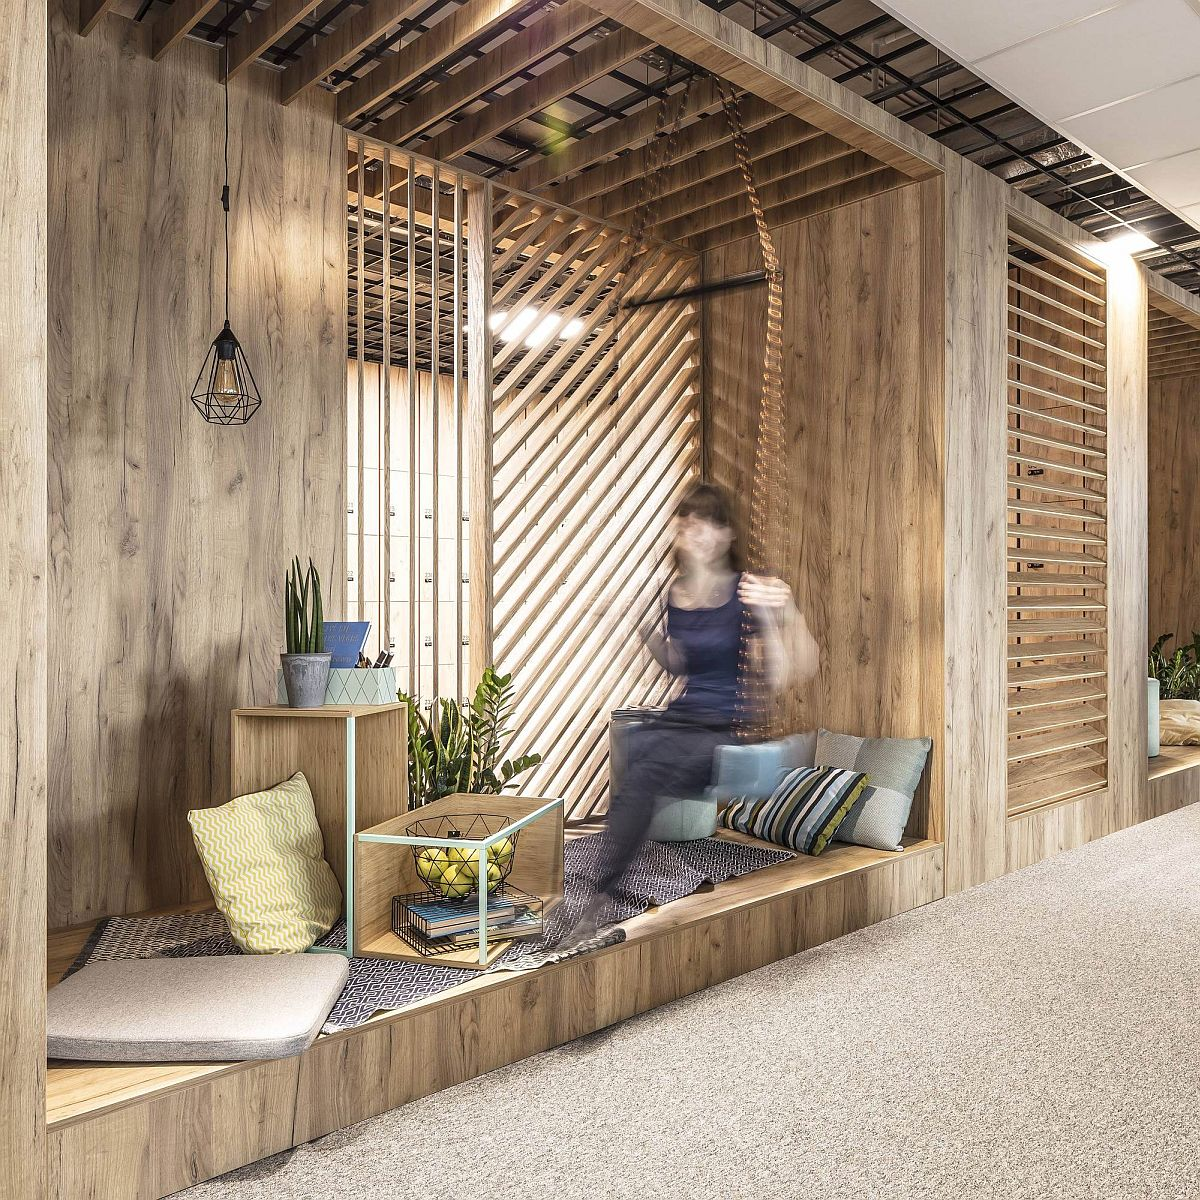 Serious work and relaxation come together inside trendy office